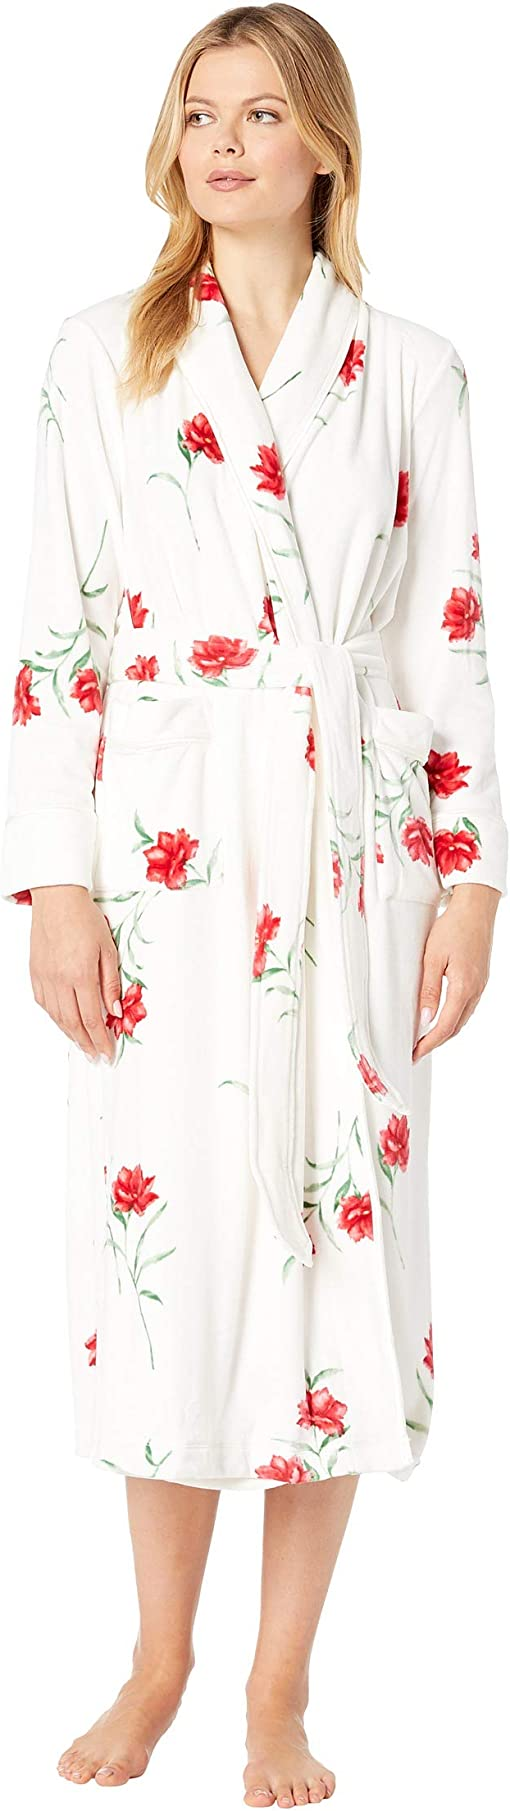 White/Red Floral